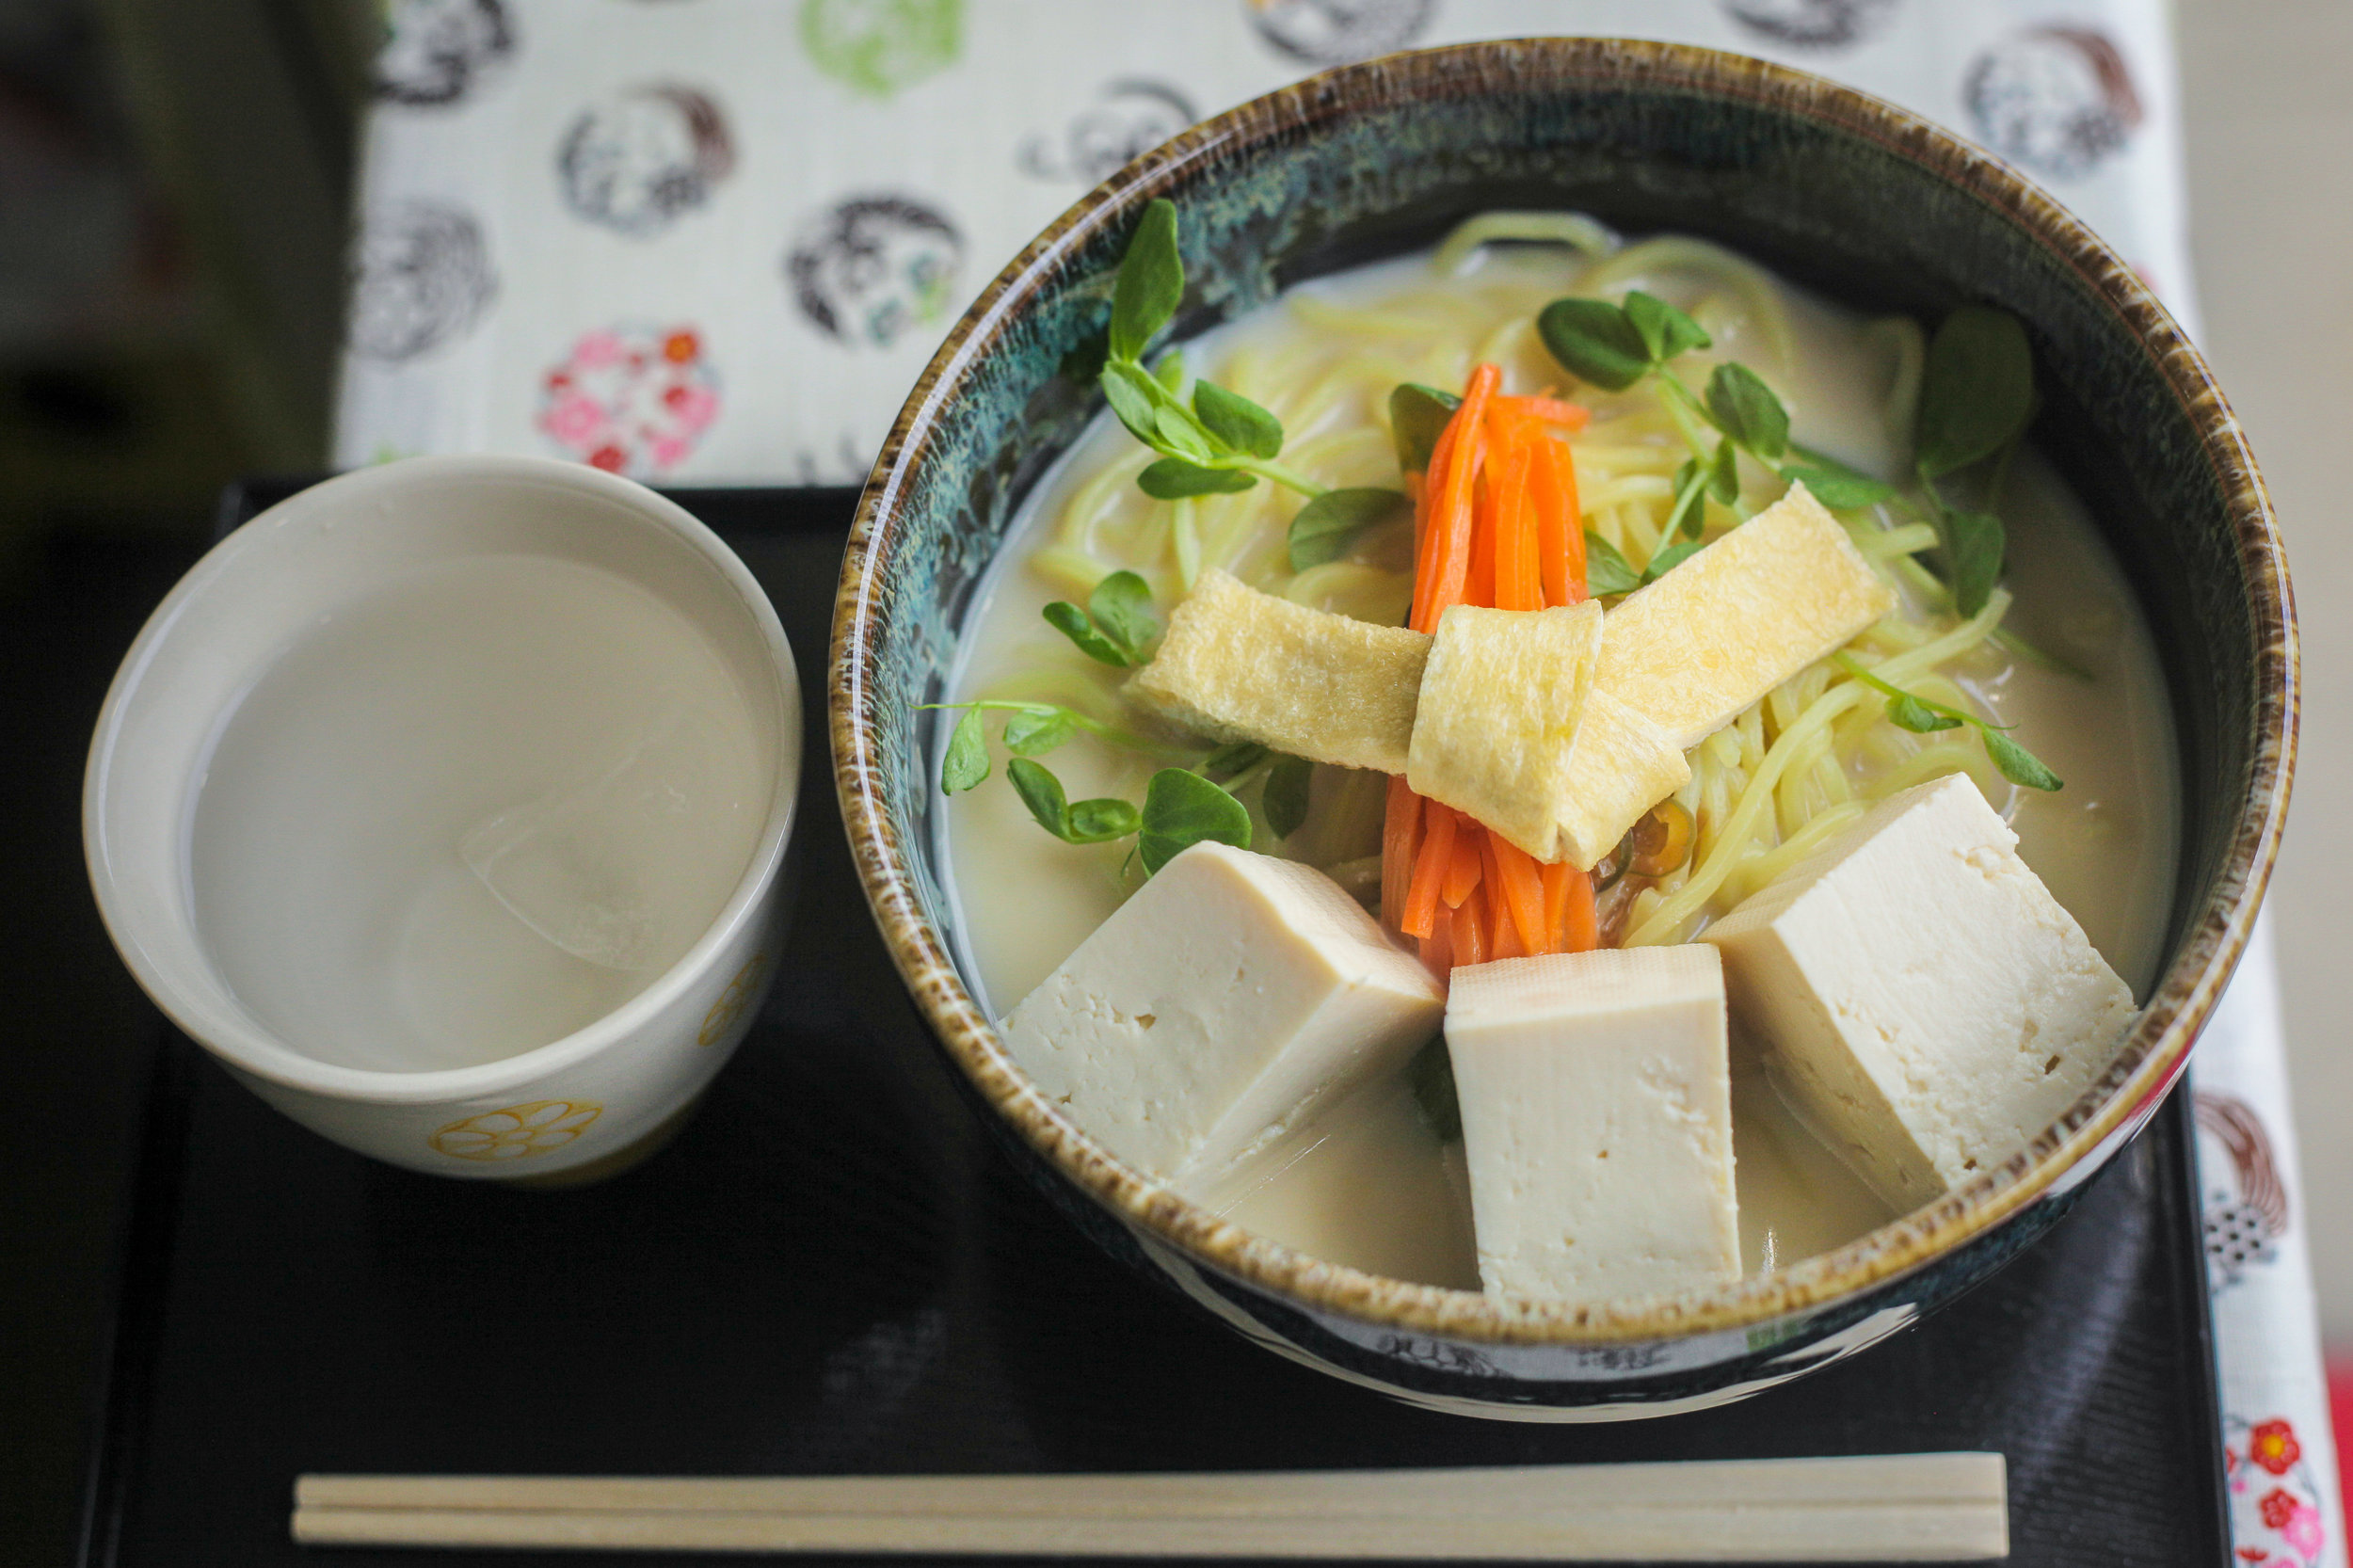 Vegans: Book your lunch - Hana-san's agreed to make her homemade tofu ramen or udon noodles just for Craft Tabby guests. Her broth is vegan-friendly because she uses only kombu seaweed and soybean milk, and she tops the noodles with seasonal vegetables and fresh tofu from a local tofu maker. The noodles are served cold in the summer and piping hot in the cooler months. ¥1,200, comes with soft serve ice cream after. Hana-san can only serve up to 3 persons per day. Let us know at least 1-2 days beforehand so that she can shop for ingredients.